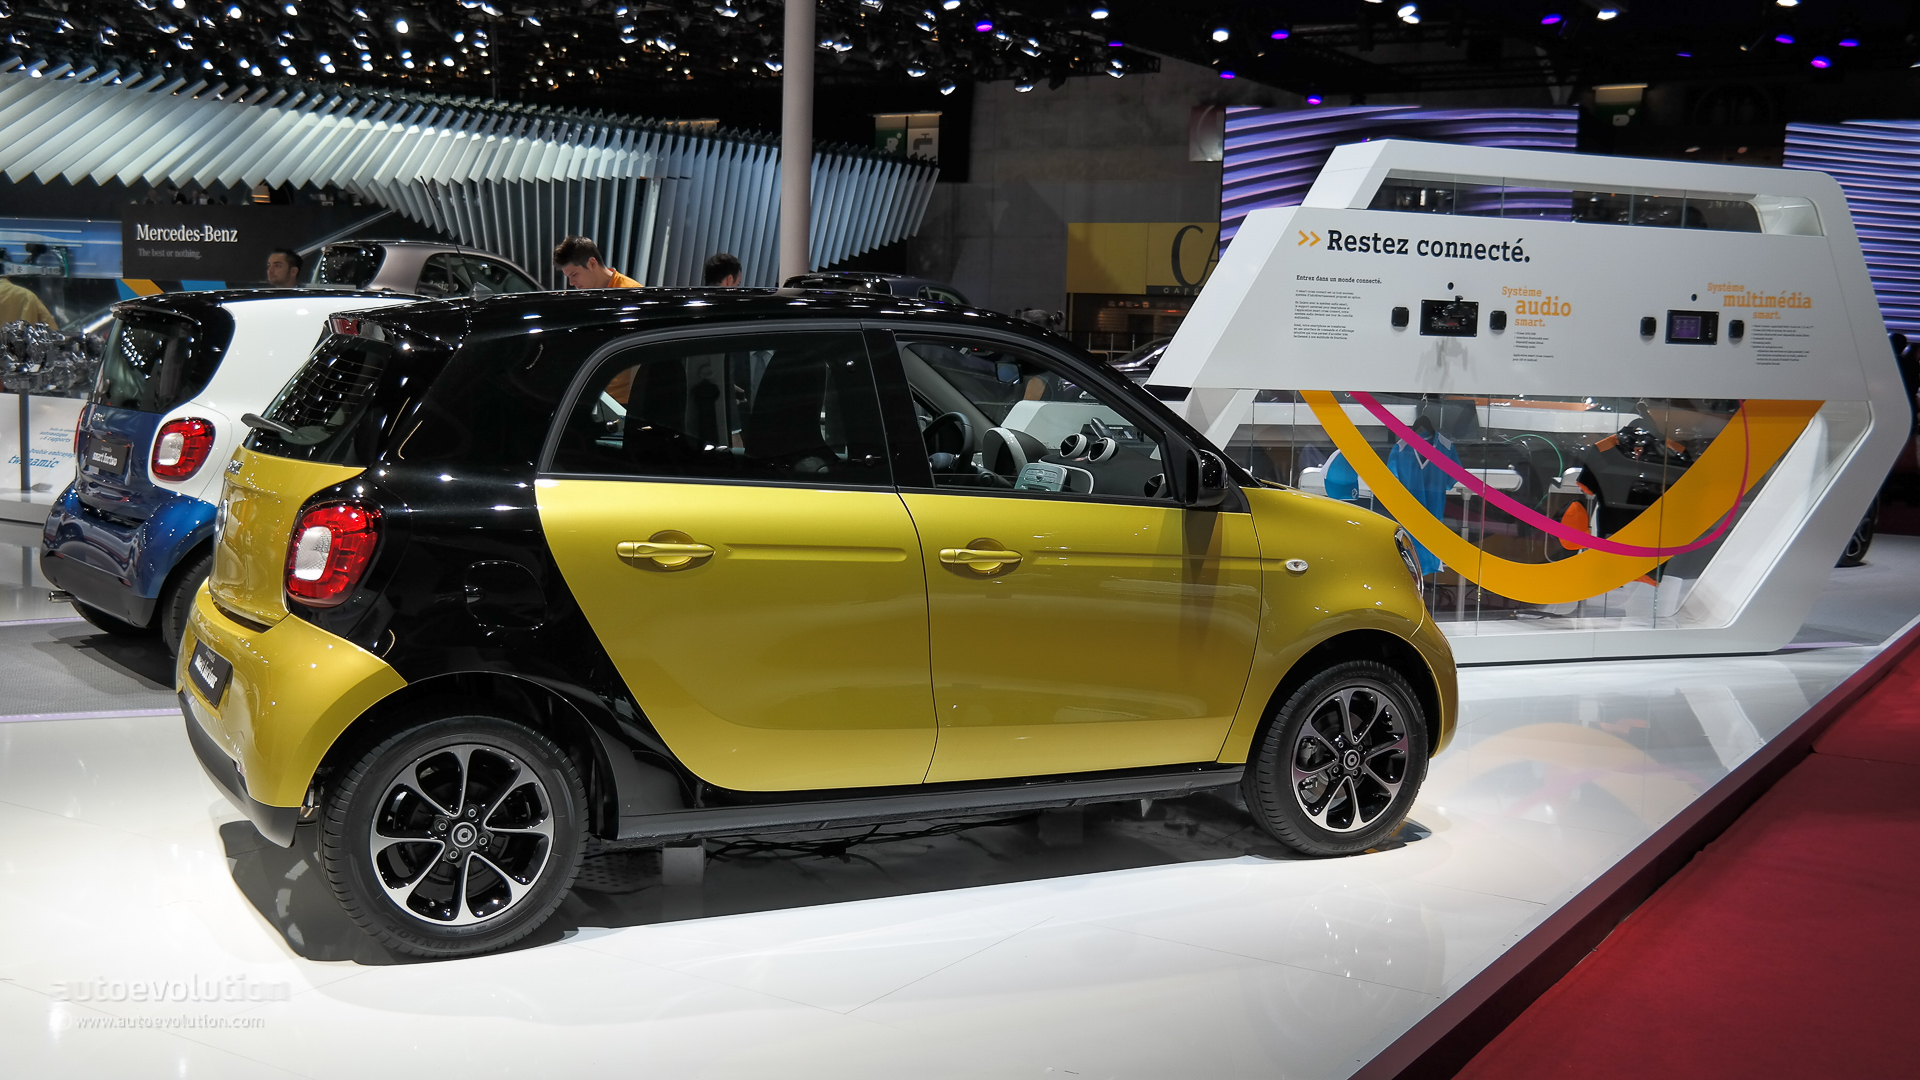 2015 smart fortwo and forfour Make World Debuts at Paris ...